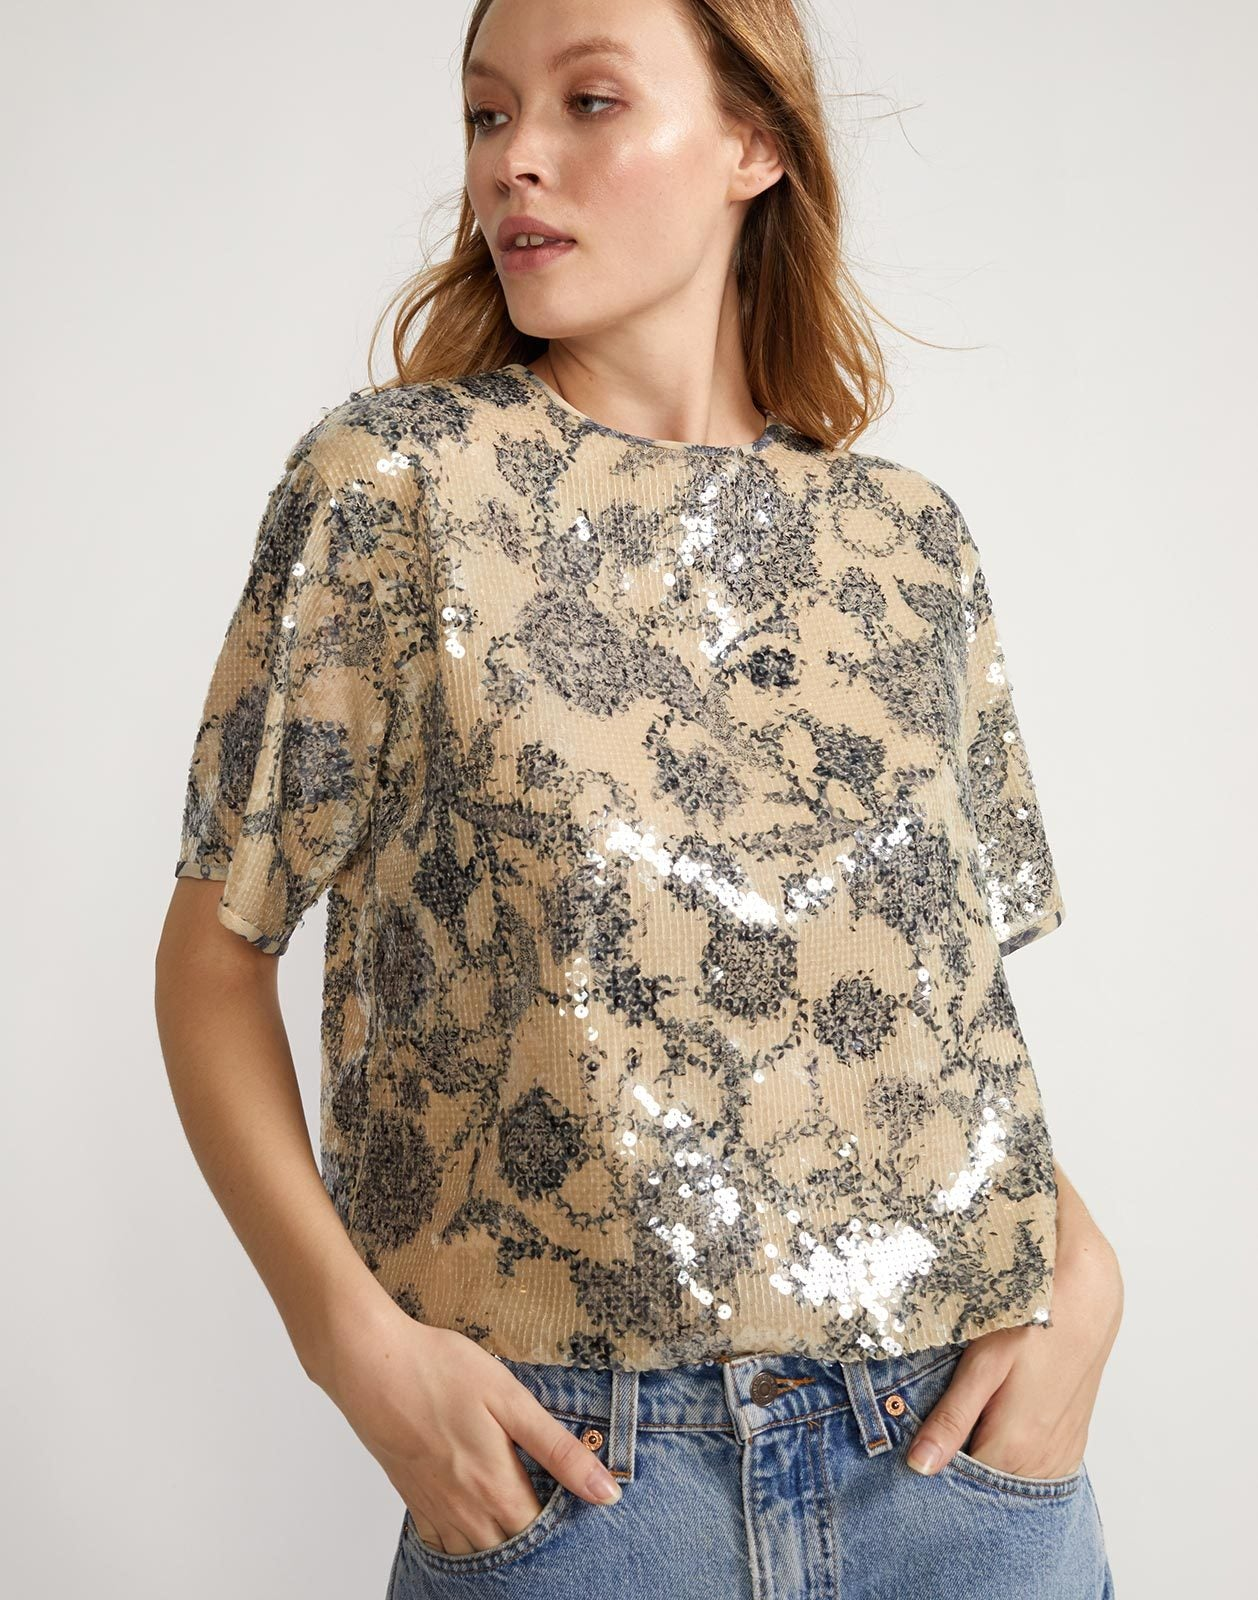 Front view of sequin embroidered floral motif tee